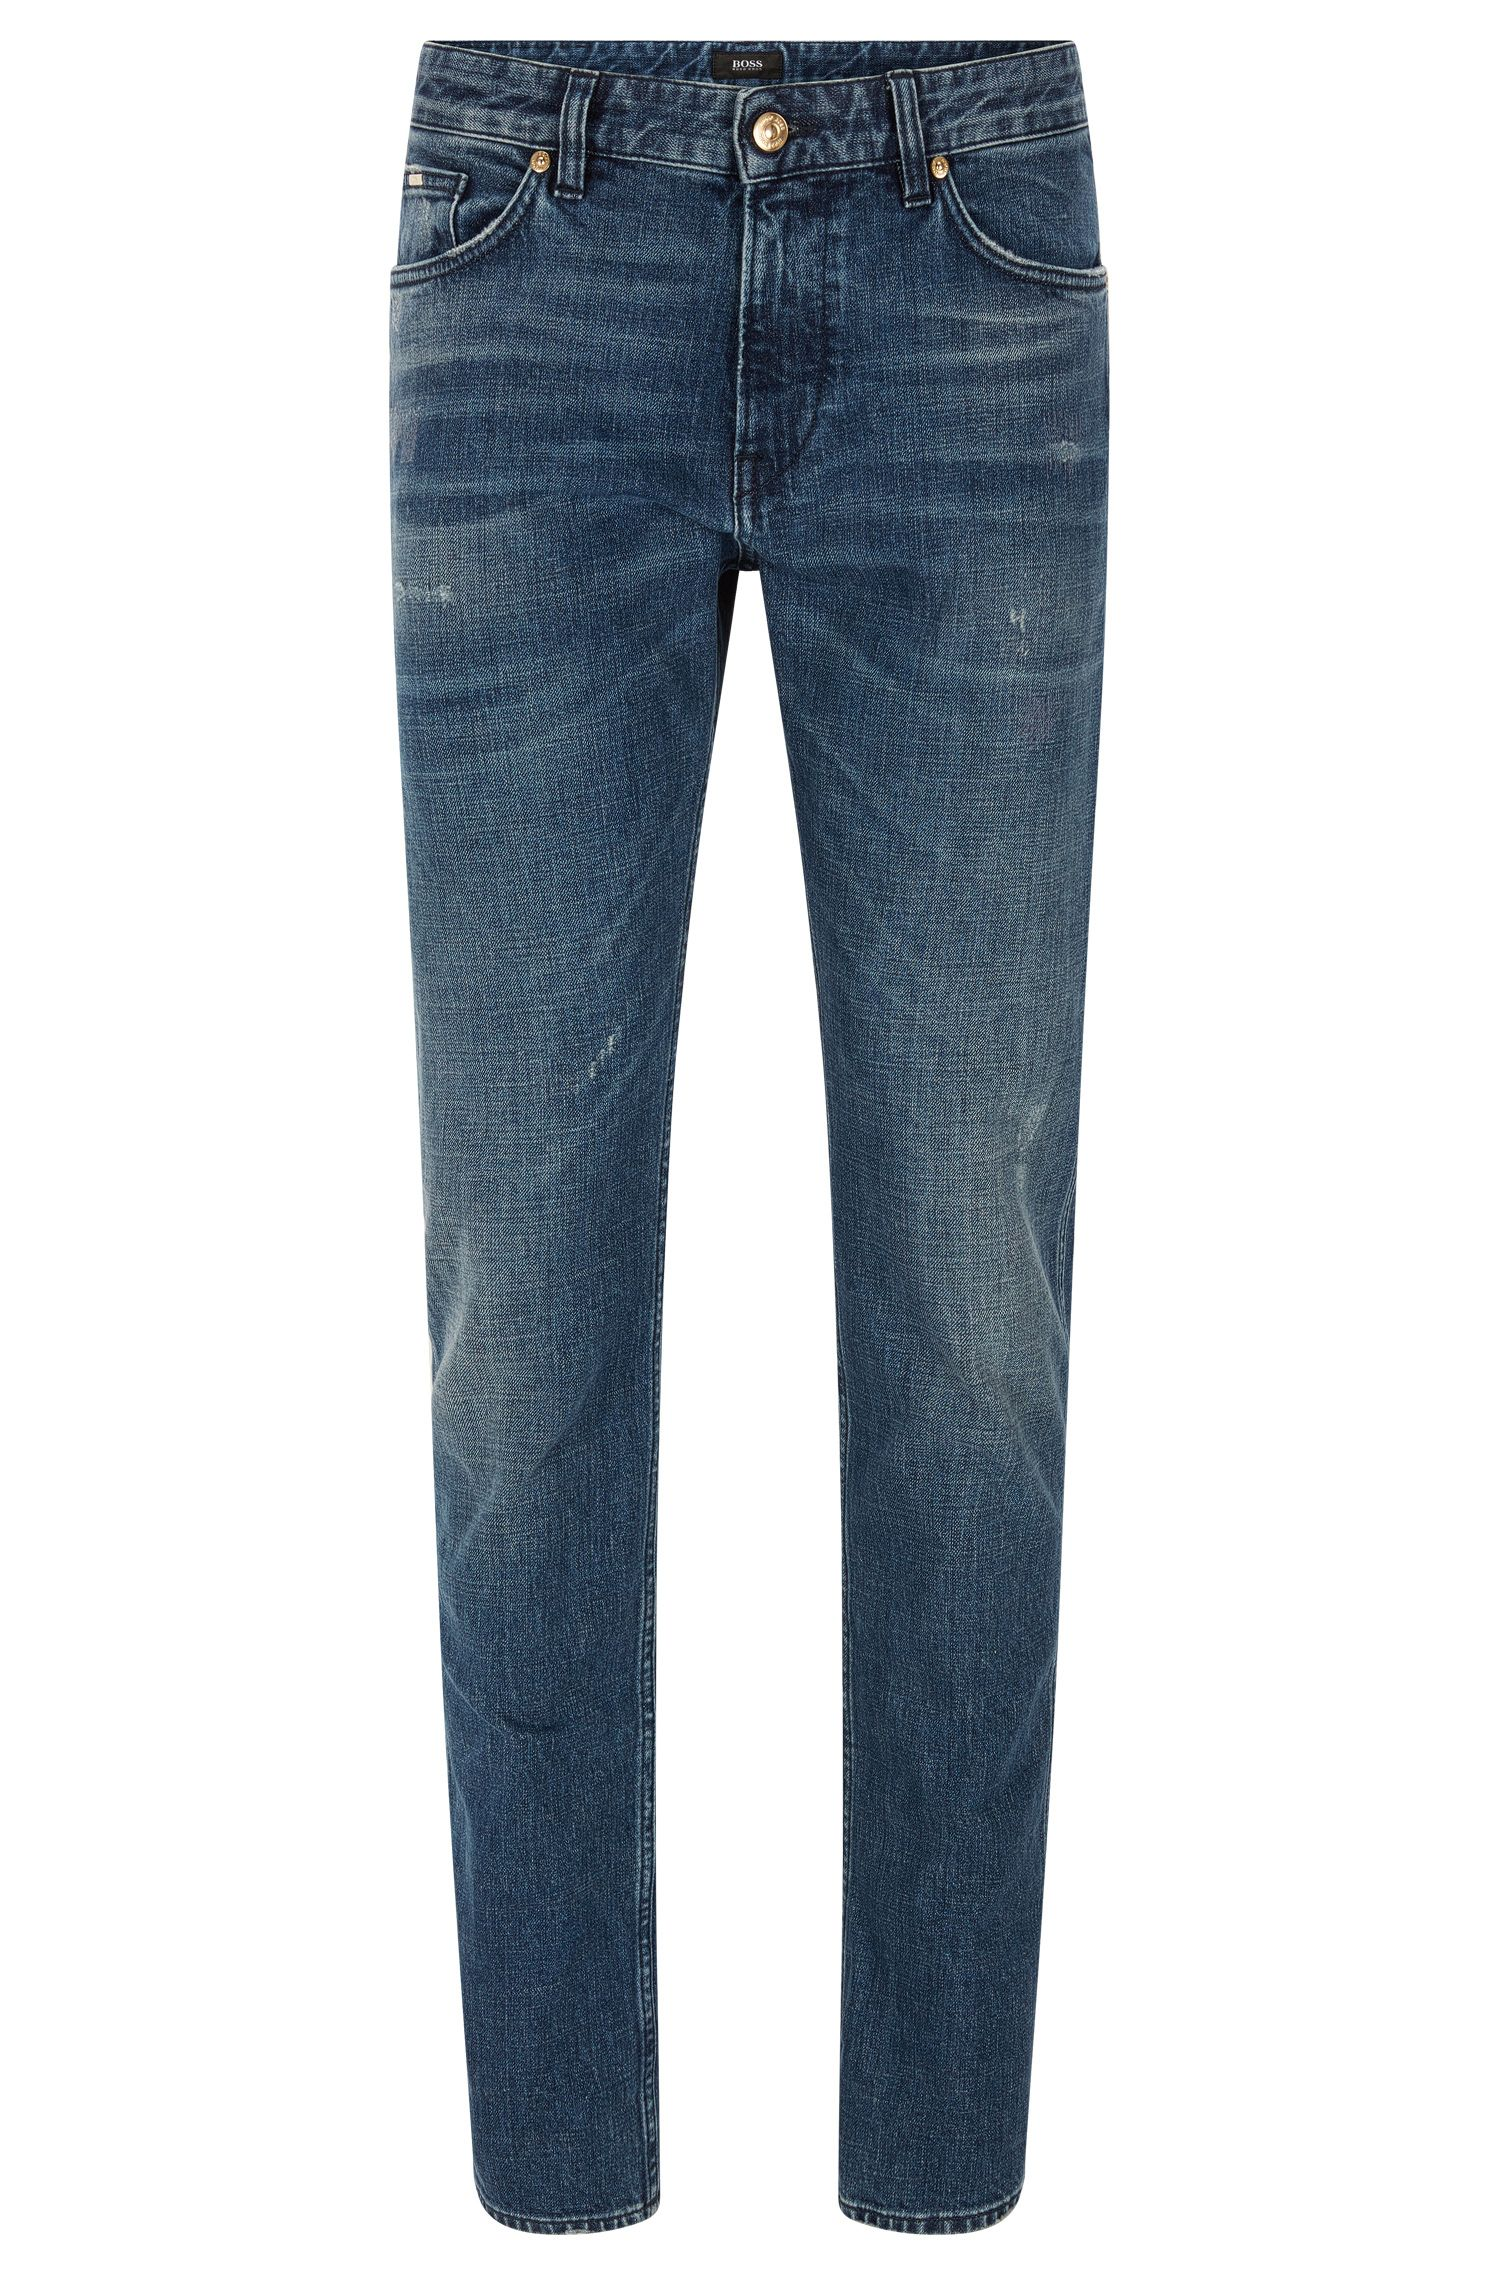 Slim-fit jeans van stretchdenim met distressed vintage-look